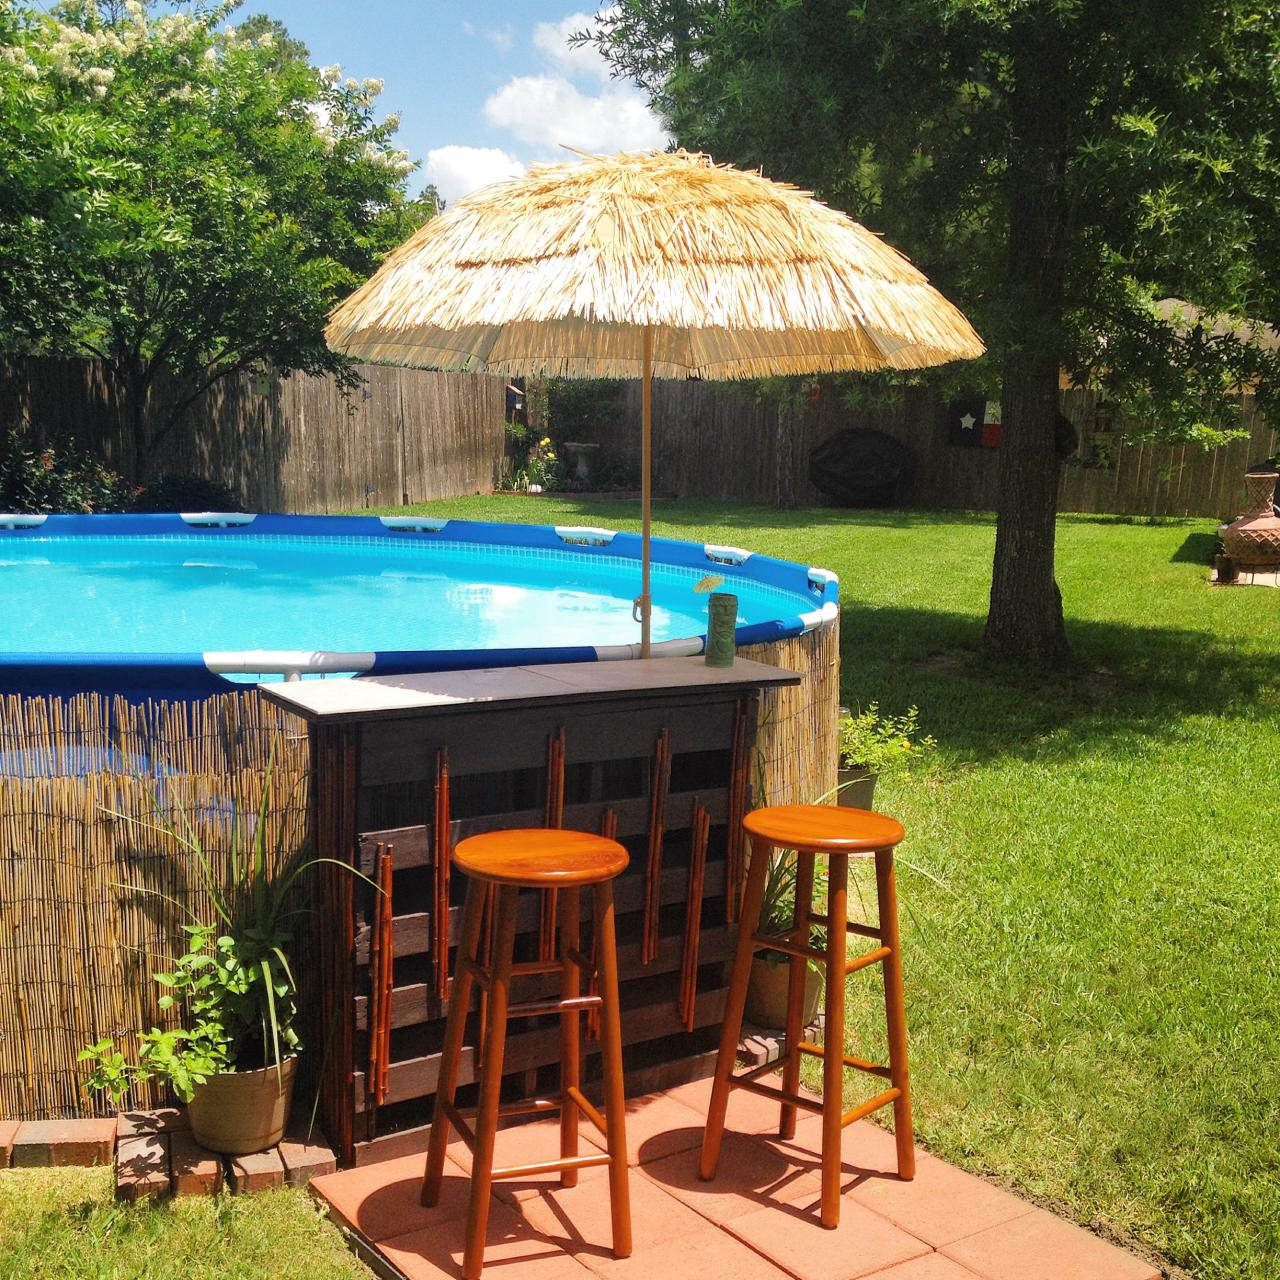 Cobertura Piscina Intex 17 Ways To Add Style To An Above Ground Pool Hgtv 39s